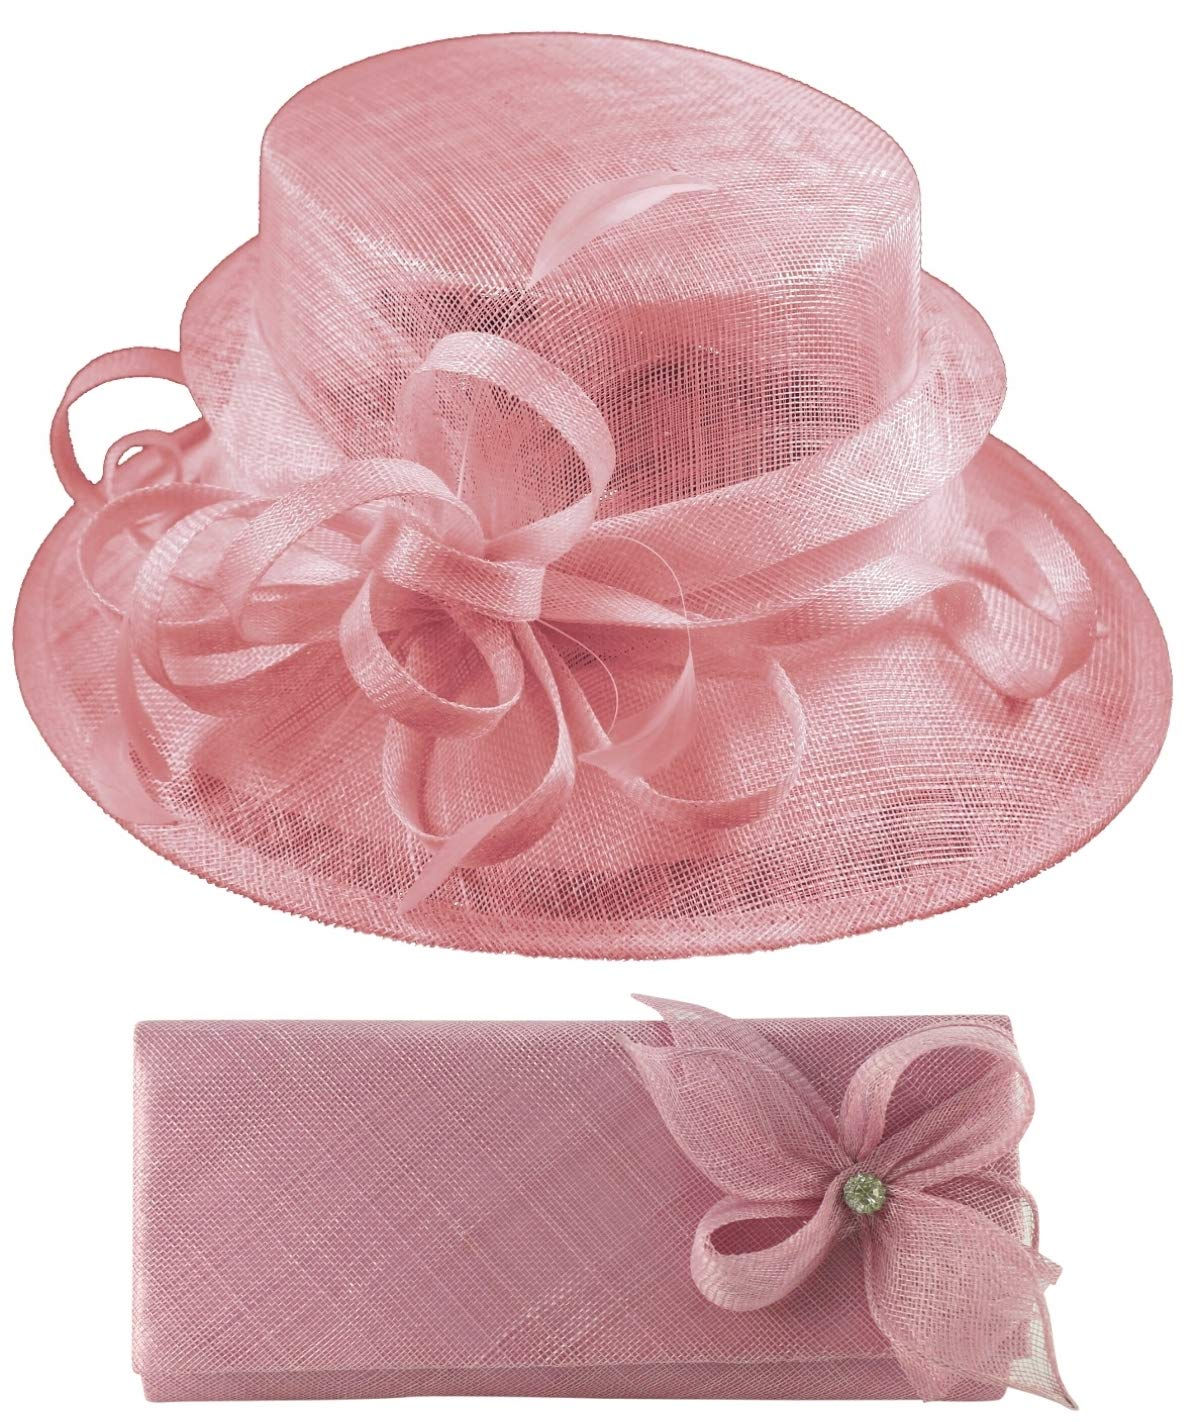 Elegance Collection Sinamay Wedding Hat Bundle with Matching Sinamay Bag (2 Items) in Lilac, Size: Medium (57cm)